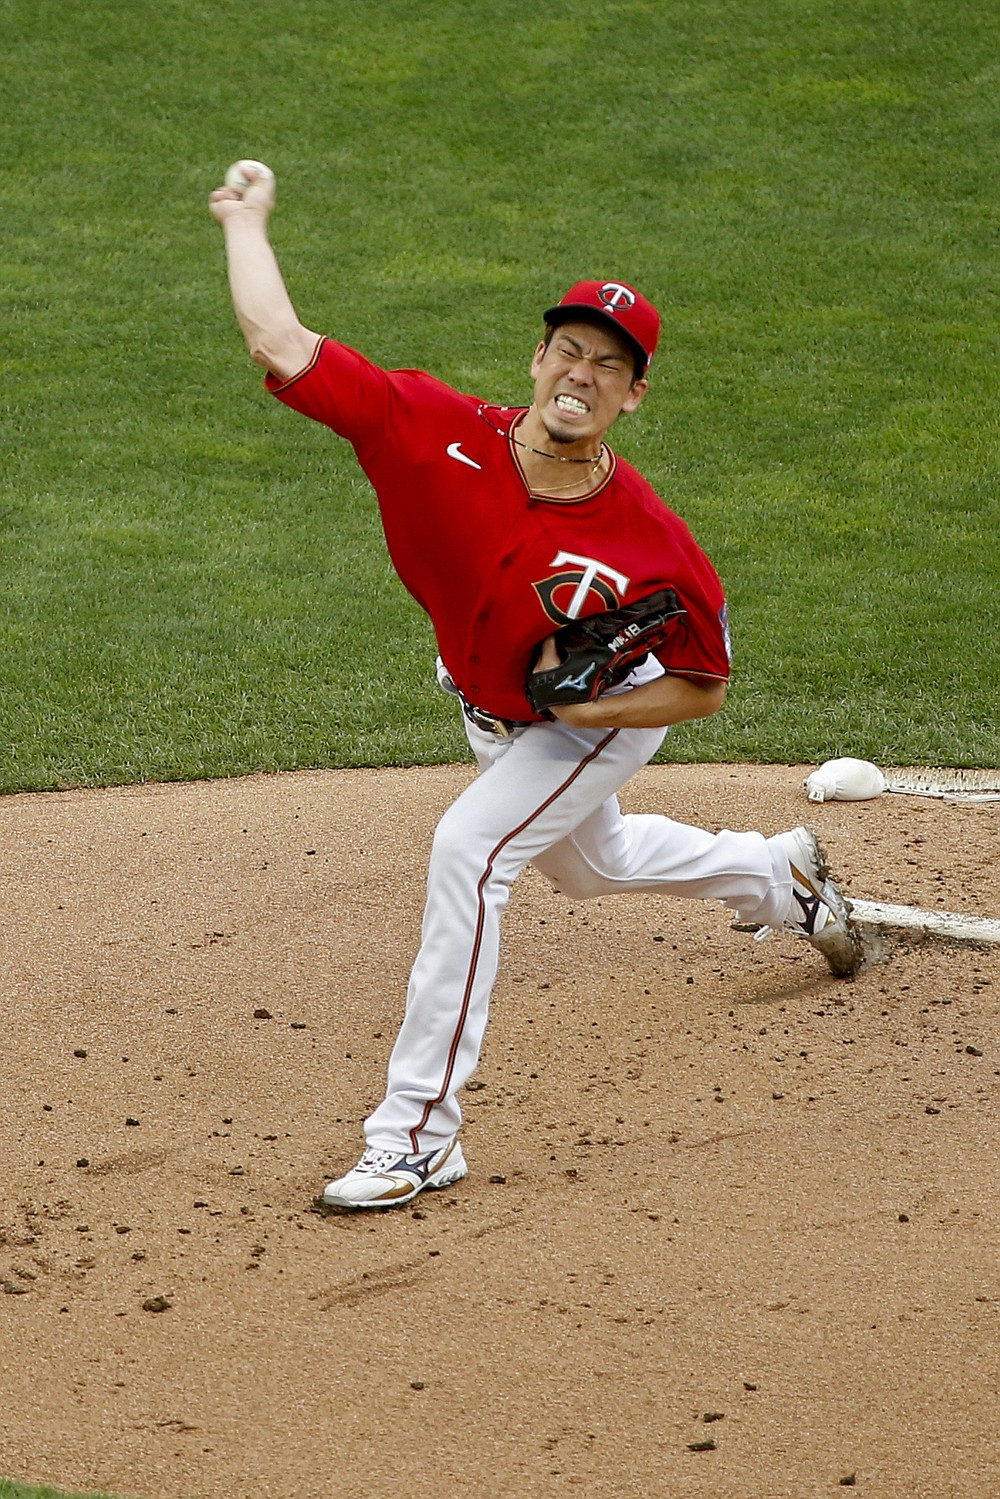 Minnesota Twins starting pitcher Kenta Maeda throws to a Cleveland Indians batter during the first inning of a baseball game Saturday, Aug. 1, 2020, in Minneapolis. (AP Photo/Bruce Kluckhohn)